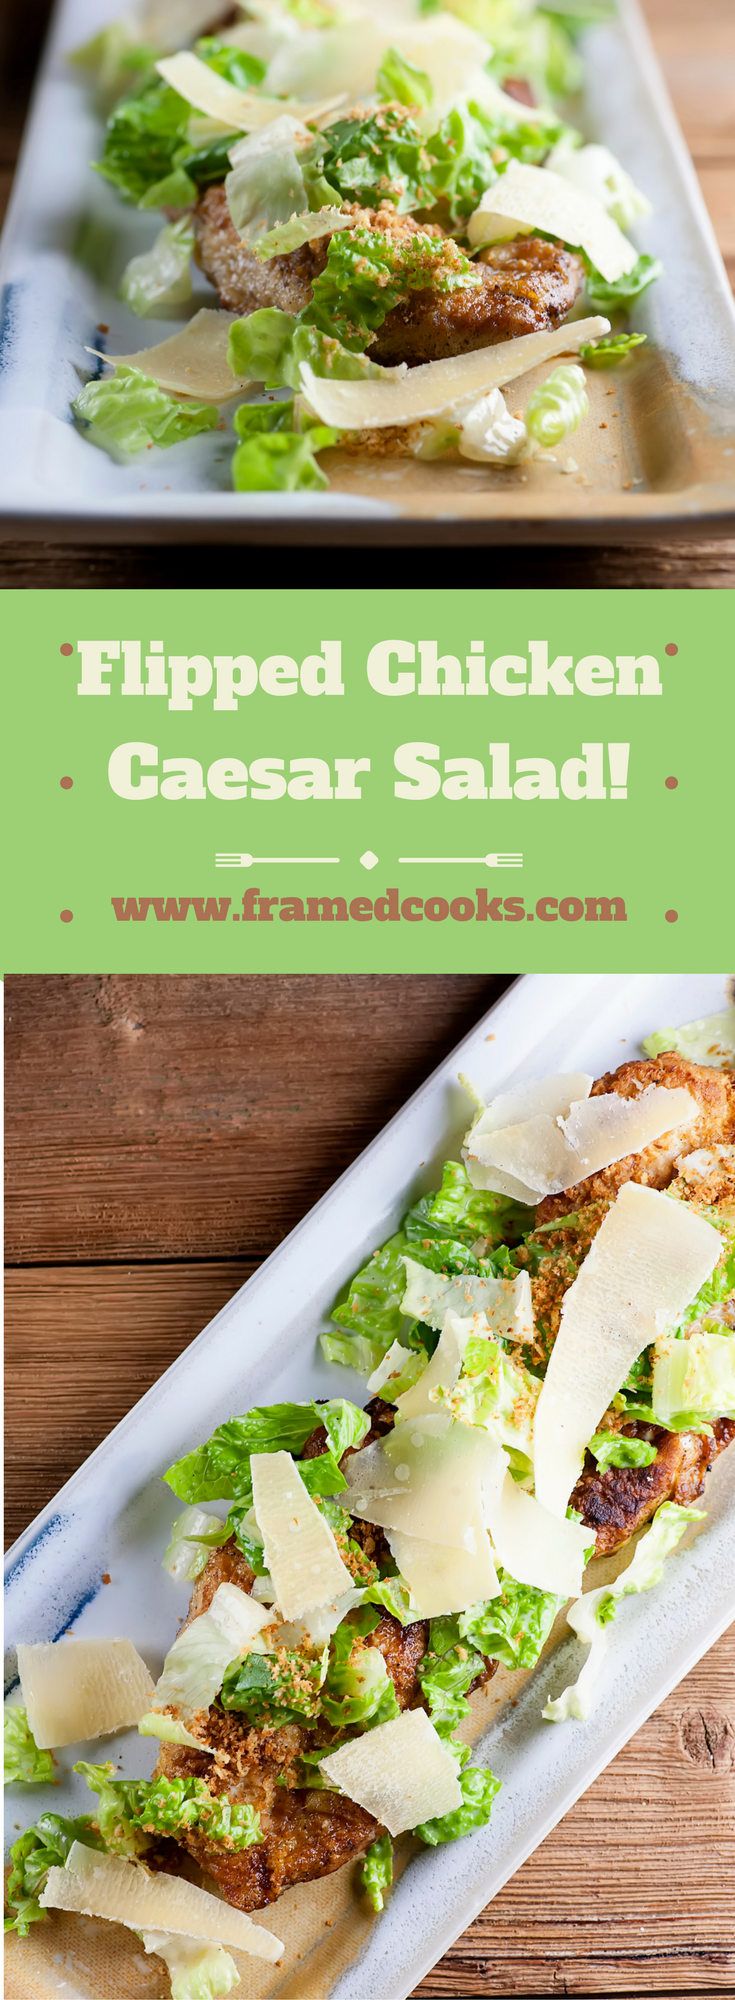 Turn things deliciously upside down with this easy recipe for flipped chicken Caesar salad!